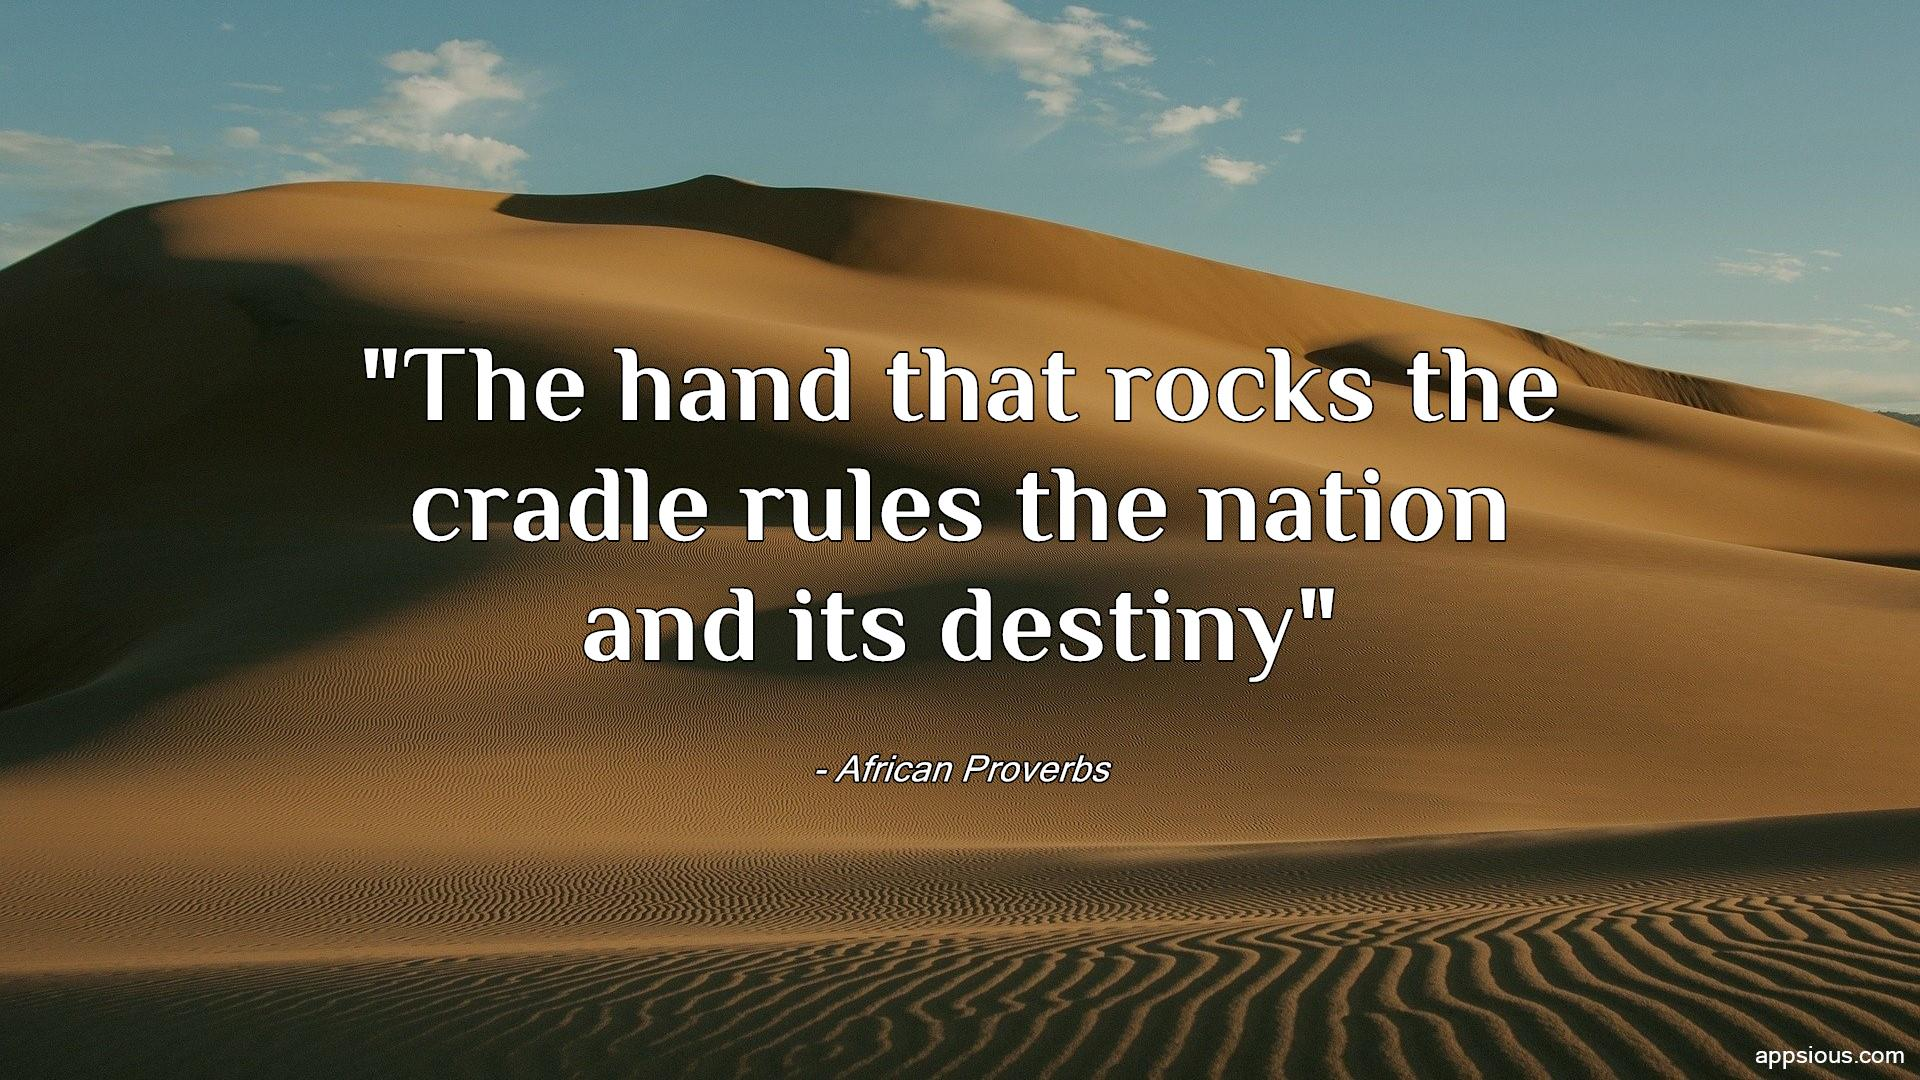 The hand that rocks the cradle rules the nation and its destiny